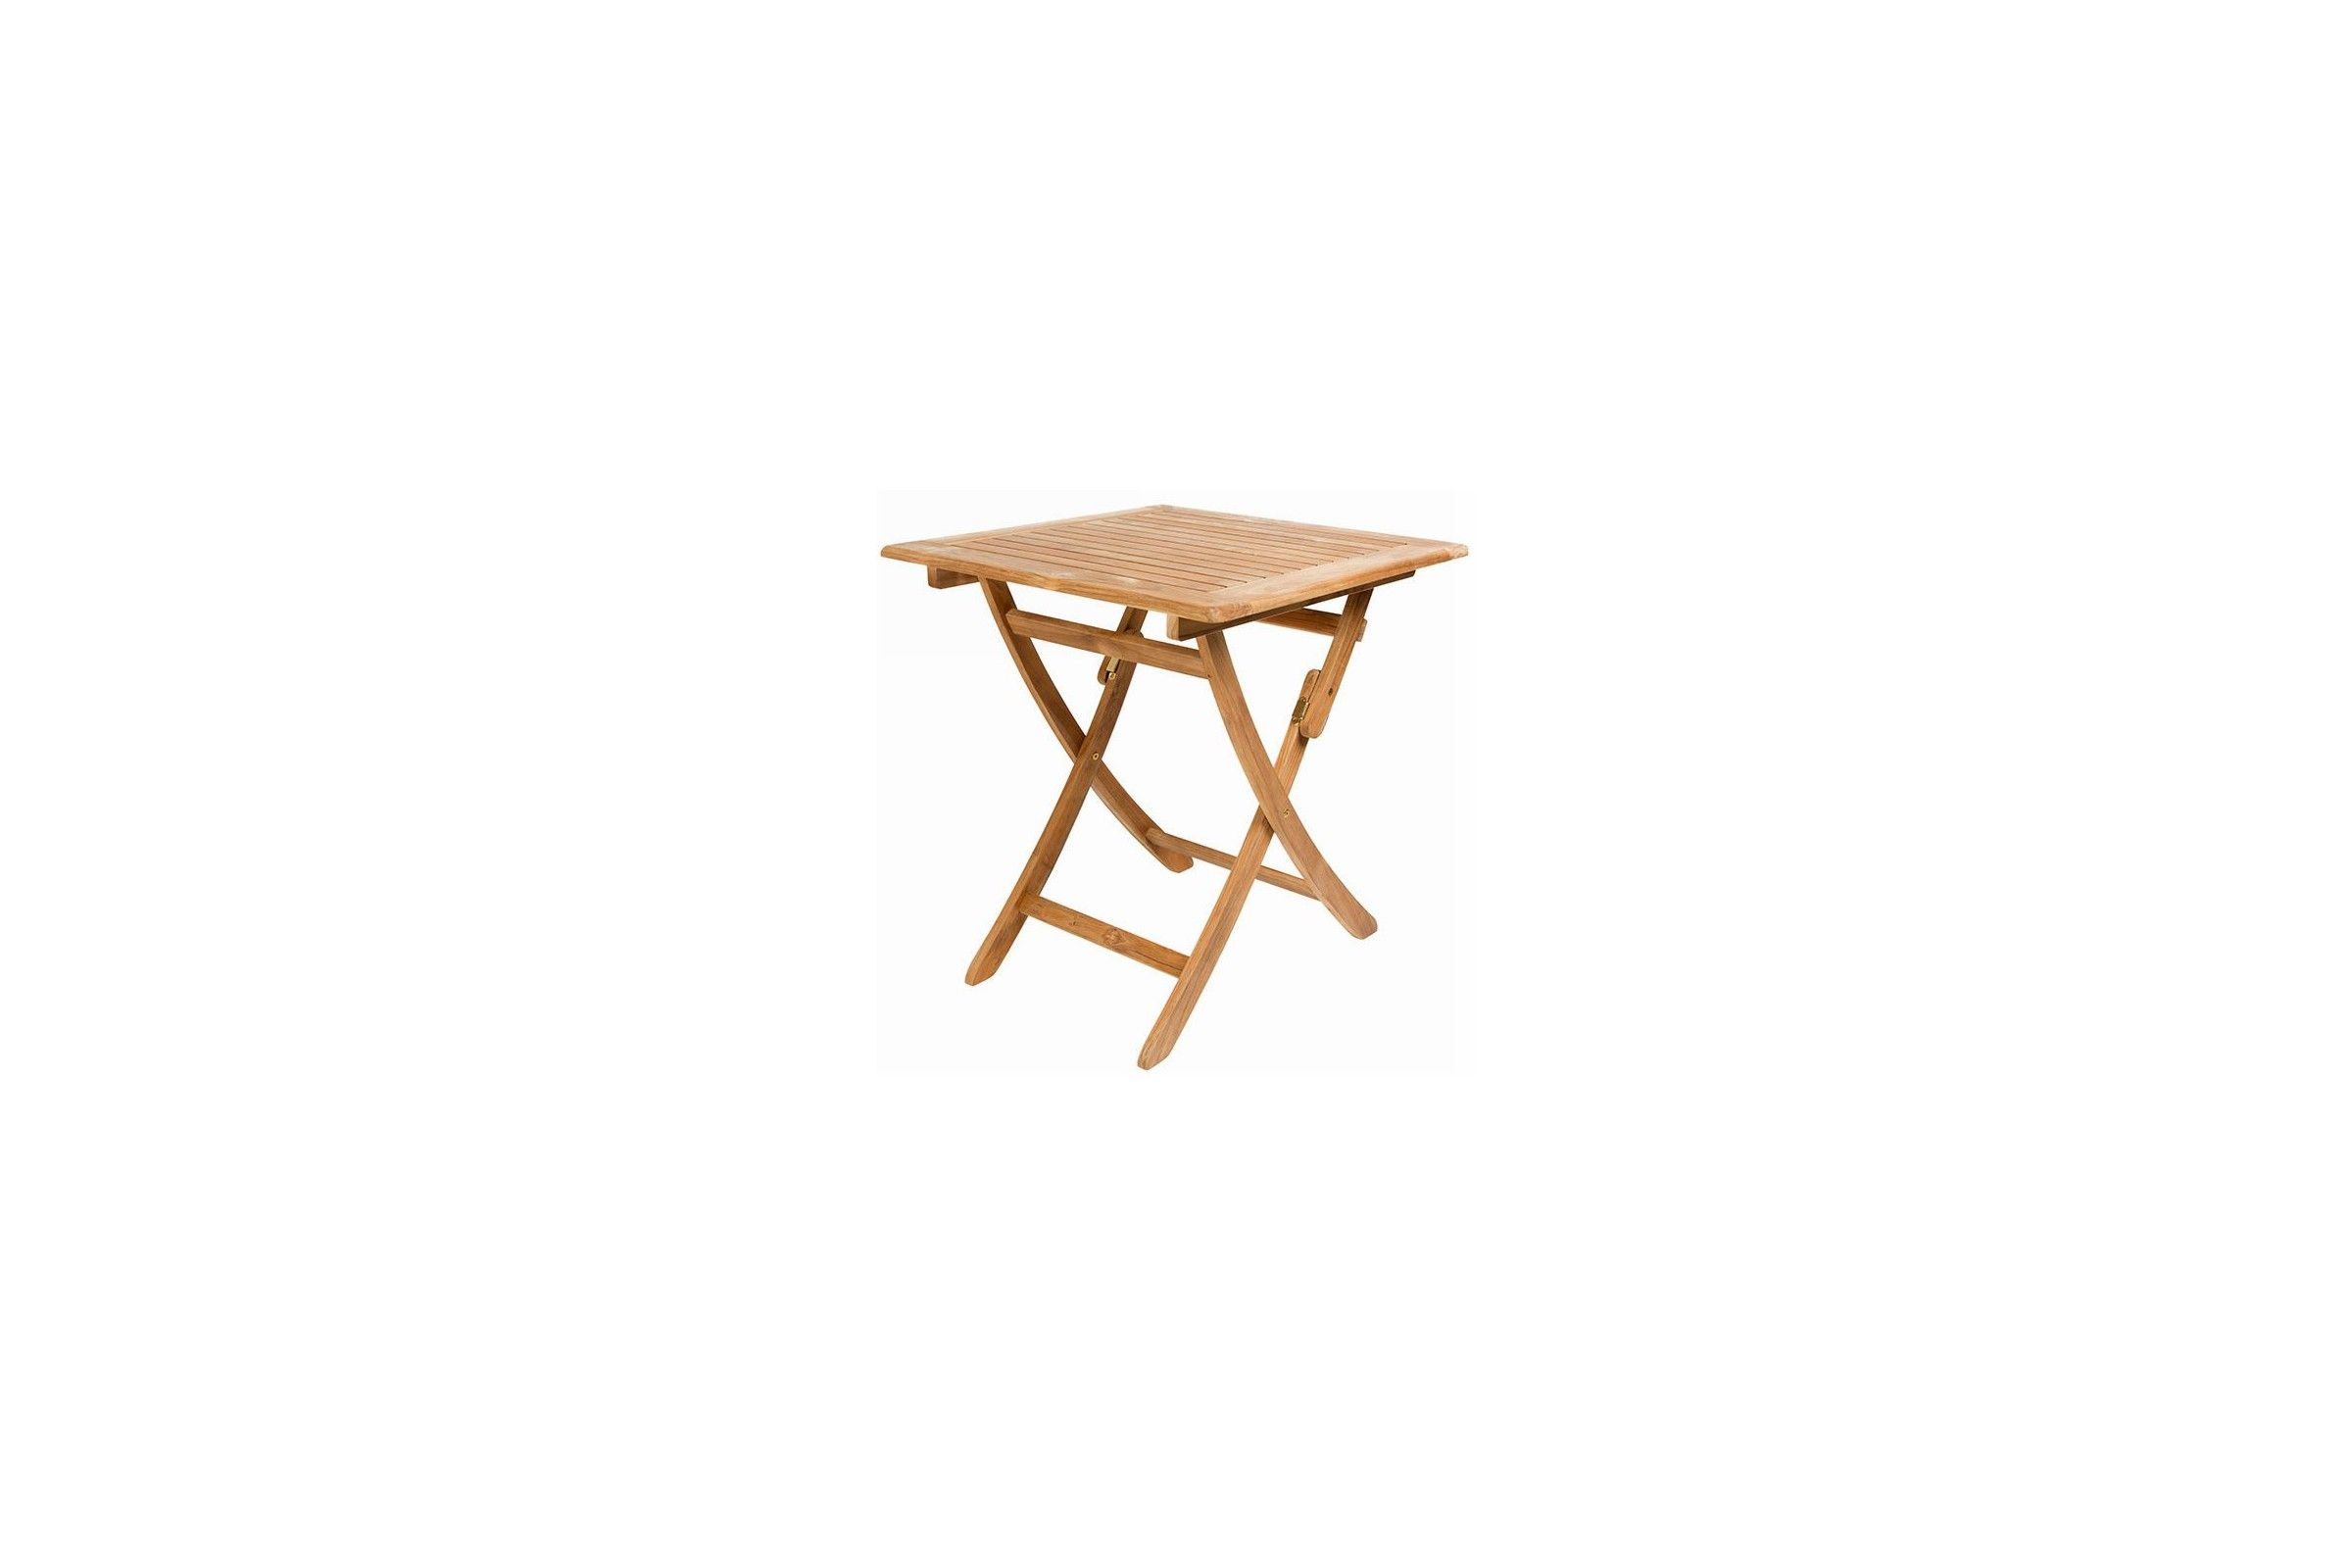 Petite table carr e 70 cm pliante en teck massif avignon for Table exterieur 70x70